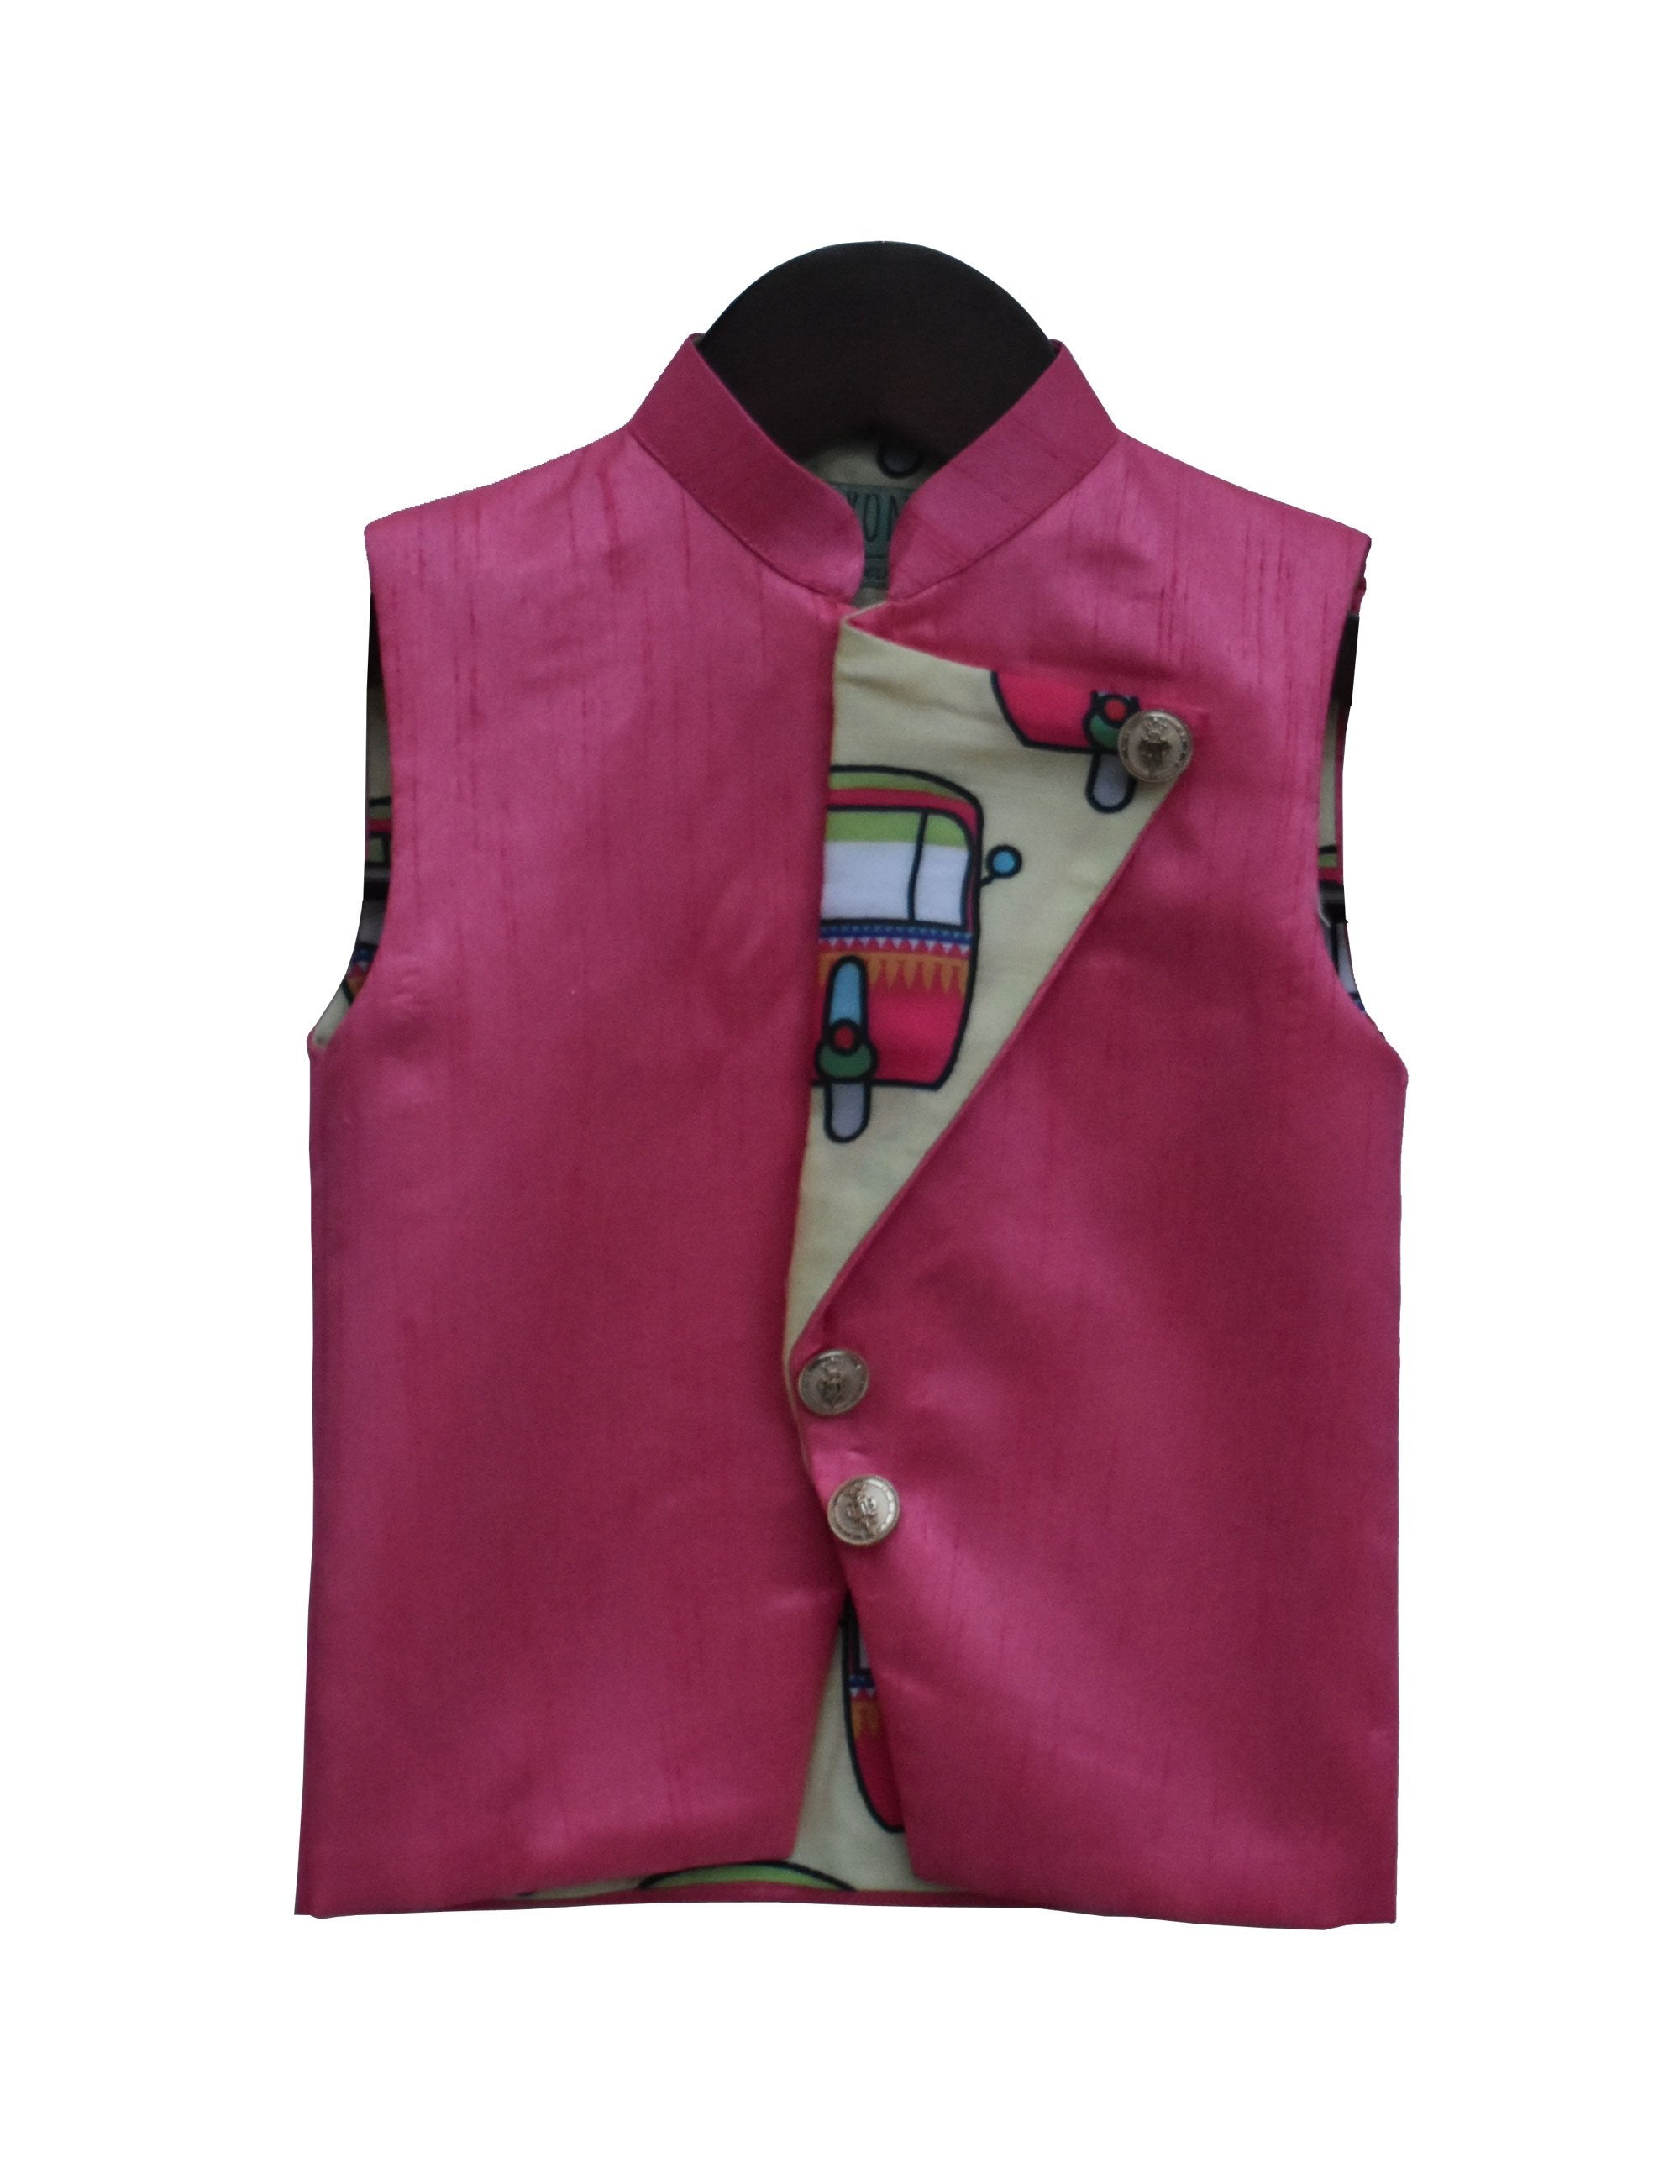 Nehru Jacket with Printed Flip Over in Pink Colour for Boys